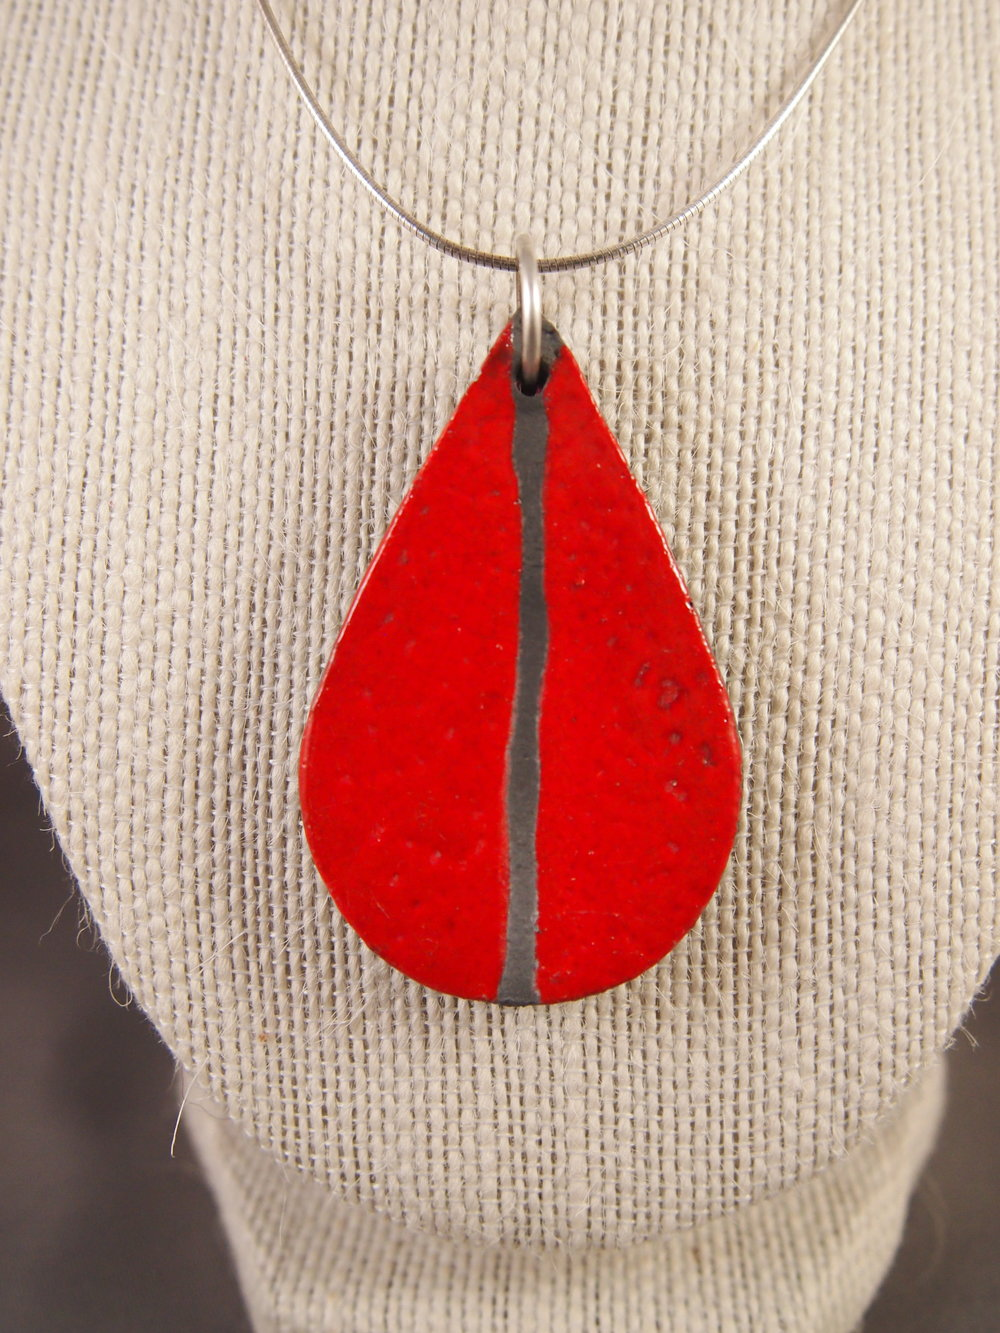 RAKU & GLASS FUSED JEWELRY -